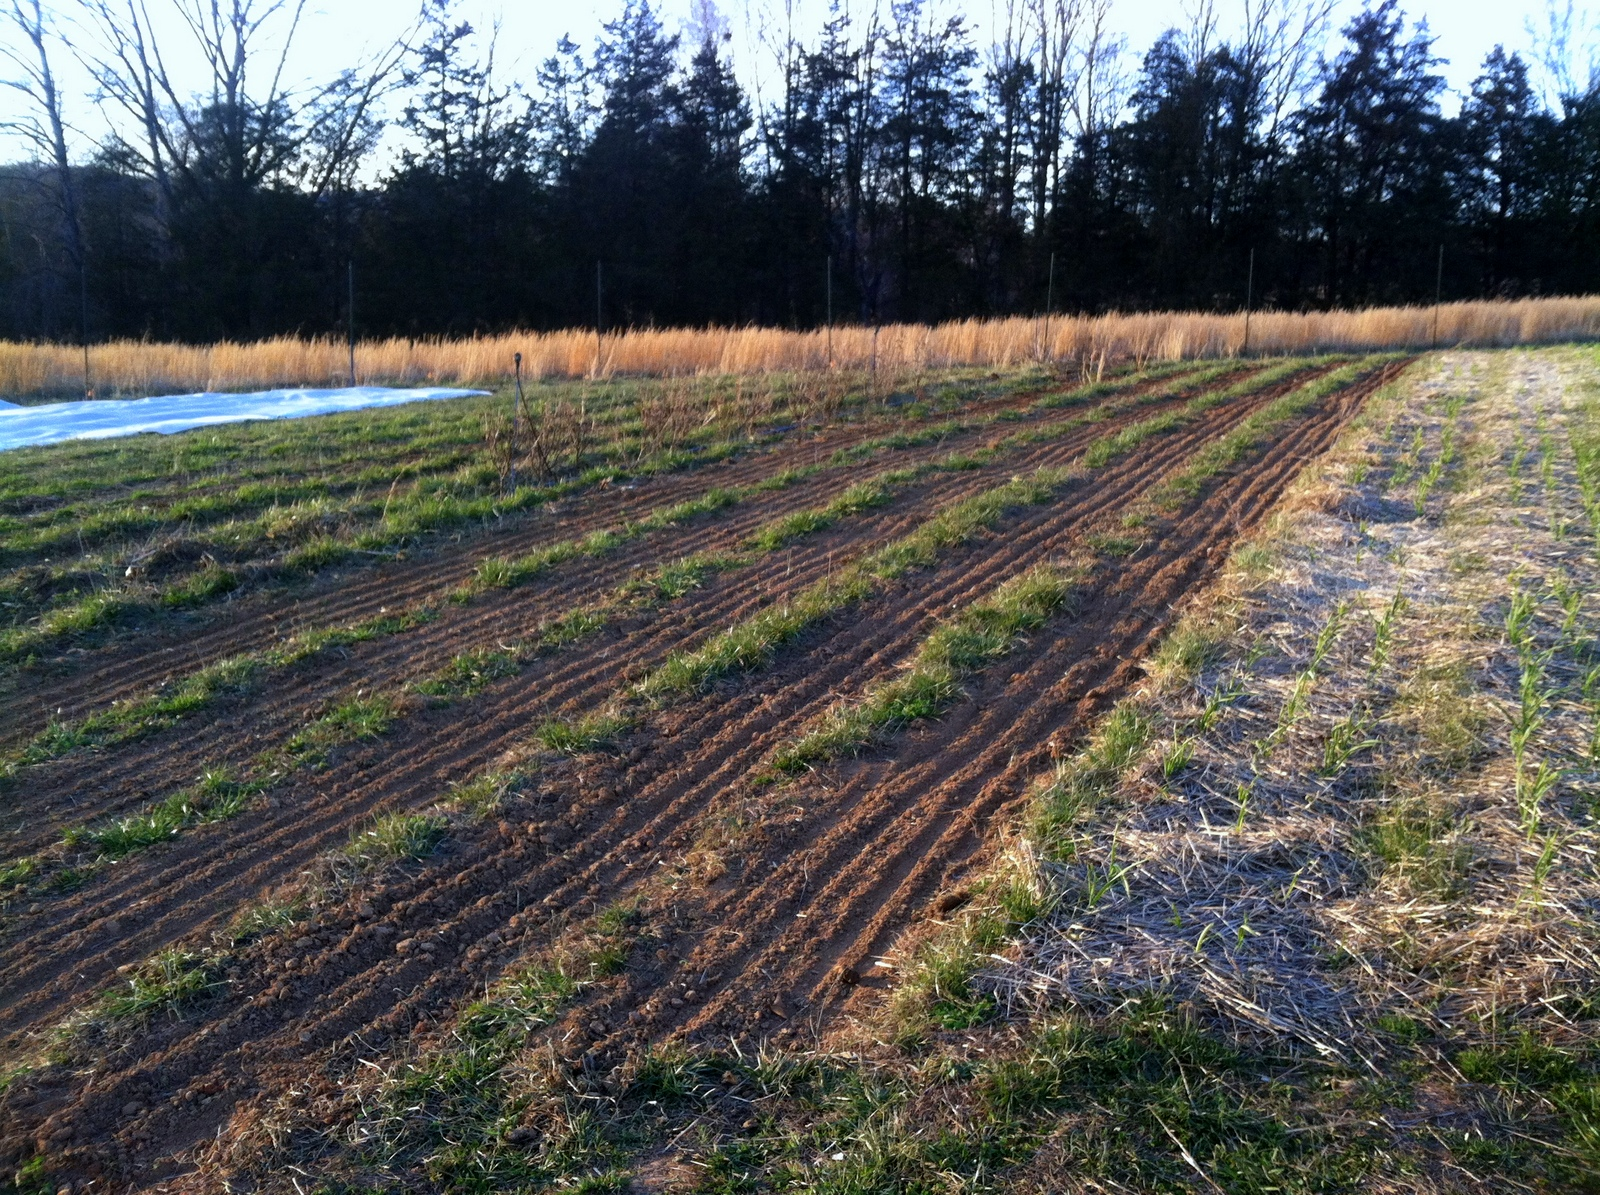 """Before the snow fell, and while the tractor was away, I prepped some beds, then planted the milky oats, a first bed of spring spinach, and the early umbeliferous herbs -- dill, cilantro, parsley, and cutting celery. The cilantro, """"pokey Joe,"""" is a chef taste-test winner I am excited to have on the farm this year. Also note, to the right, the garlic as it comes in."""